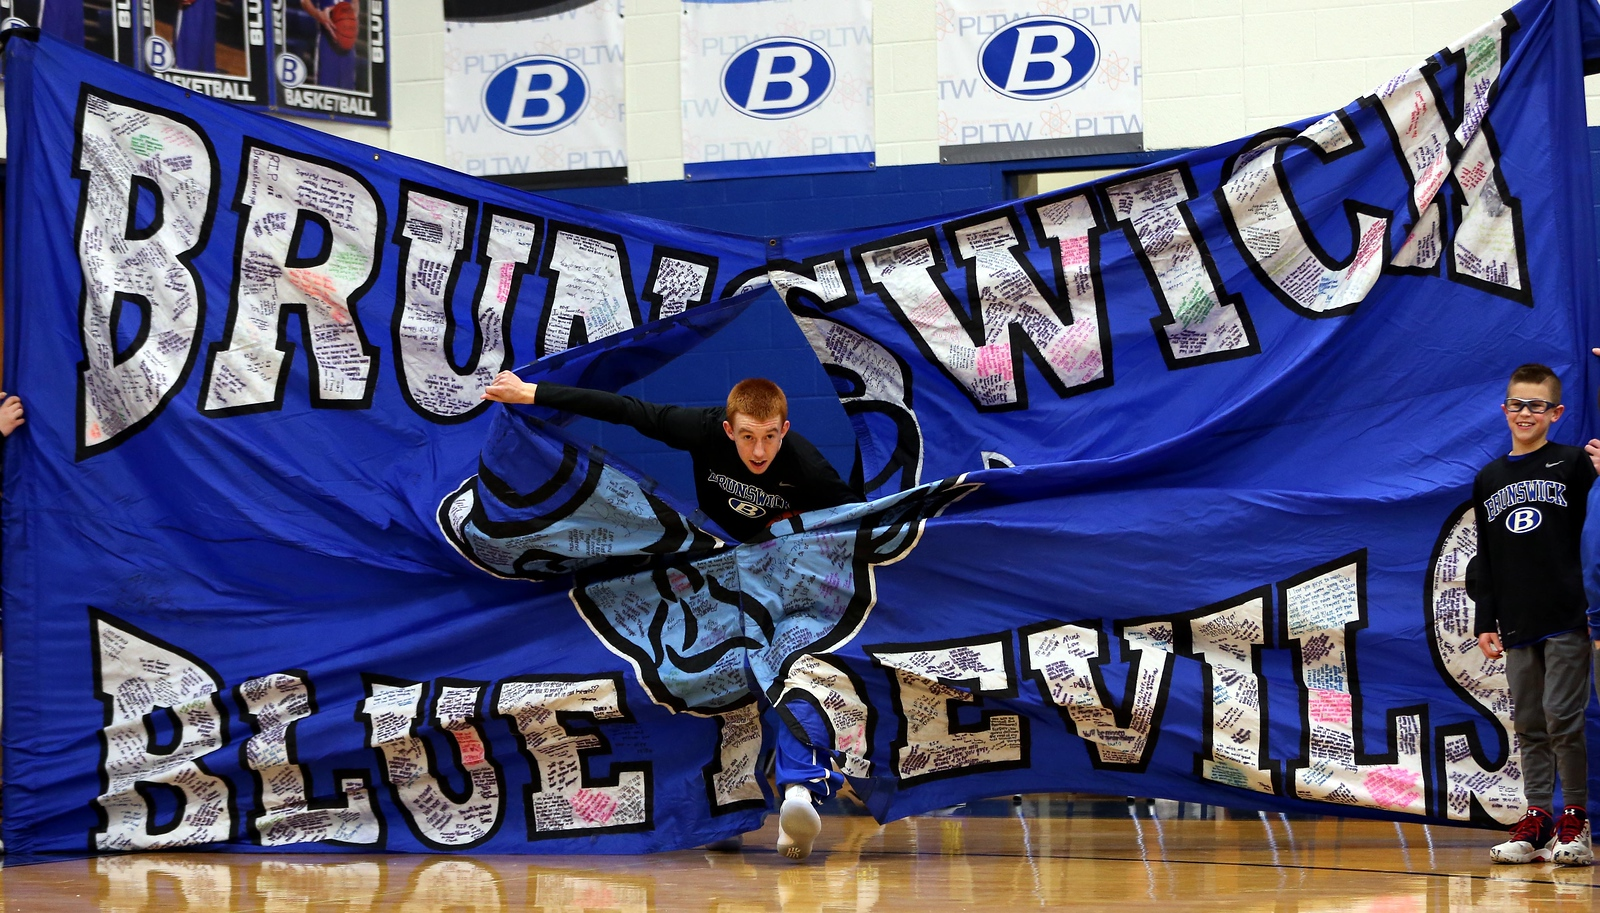 Kyle Goessler breaks through the banner prior to the start of the Blue Devils game against Elyria. AARON JOSEFCZYK / GAZETTE